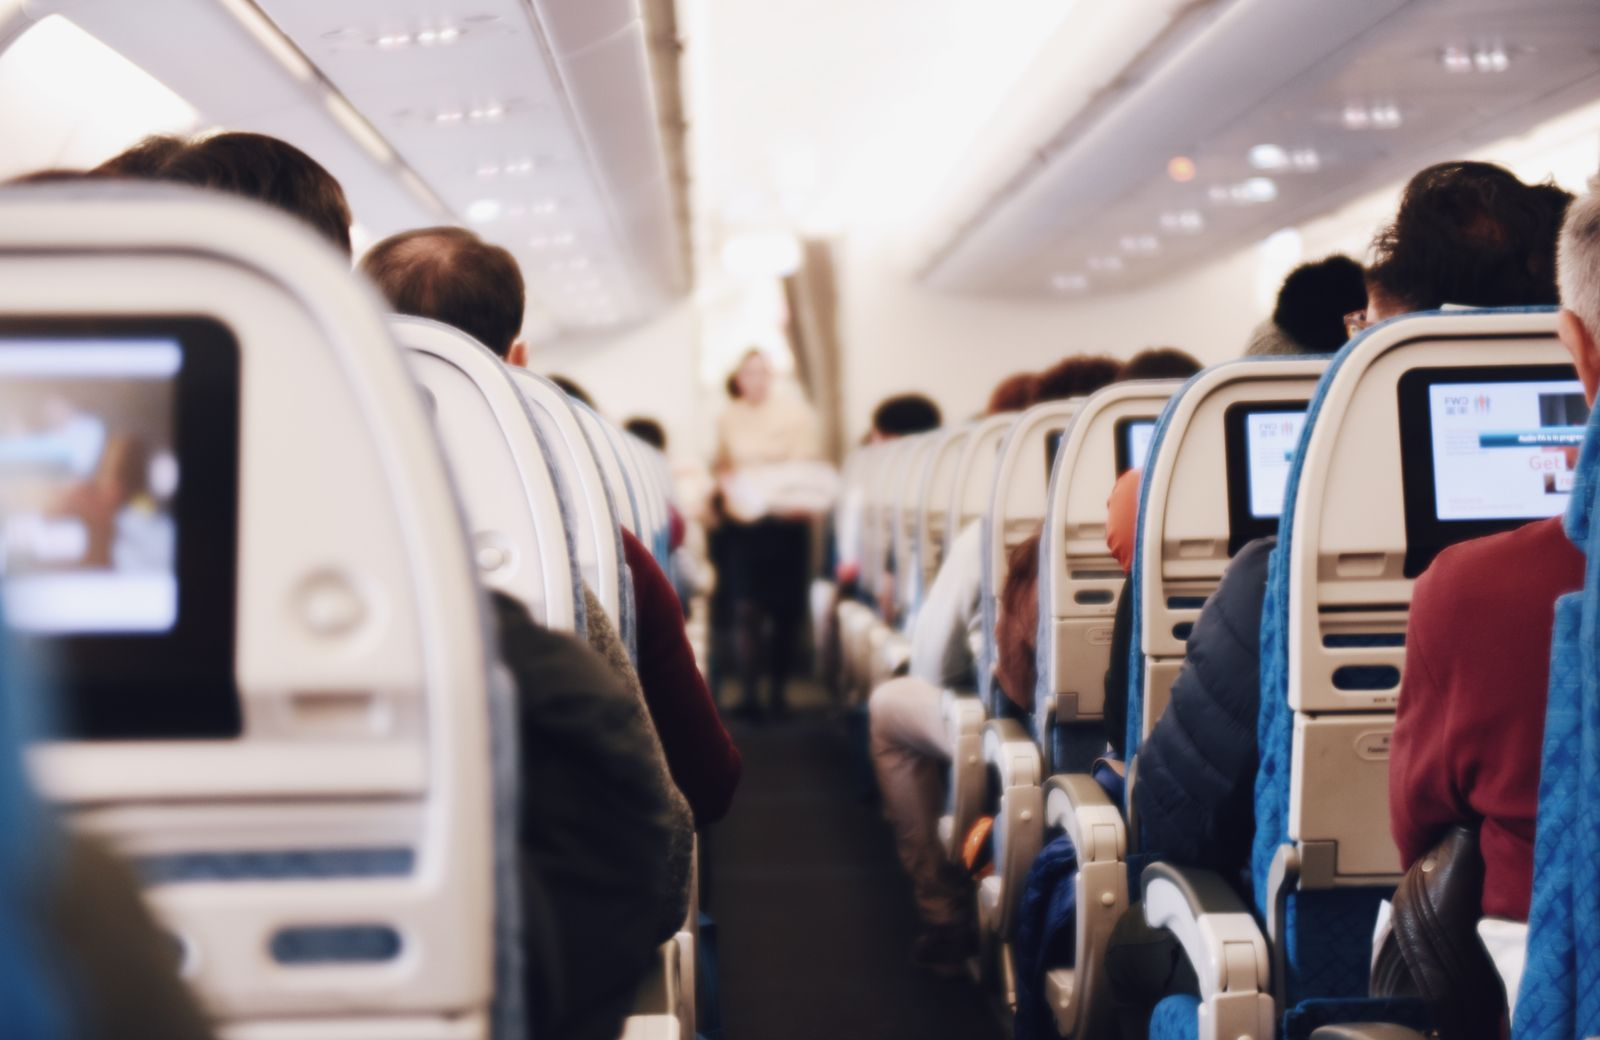 Choose your seat carefully to avoid getting sick when you fly.